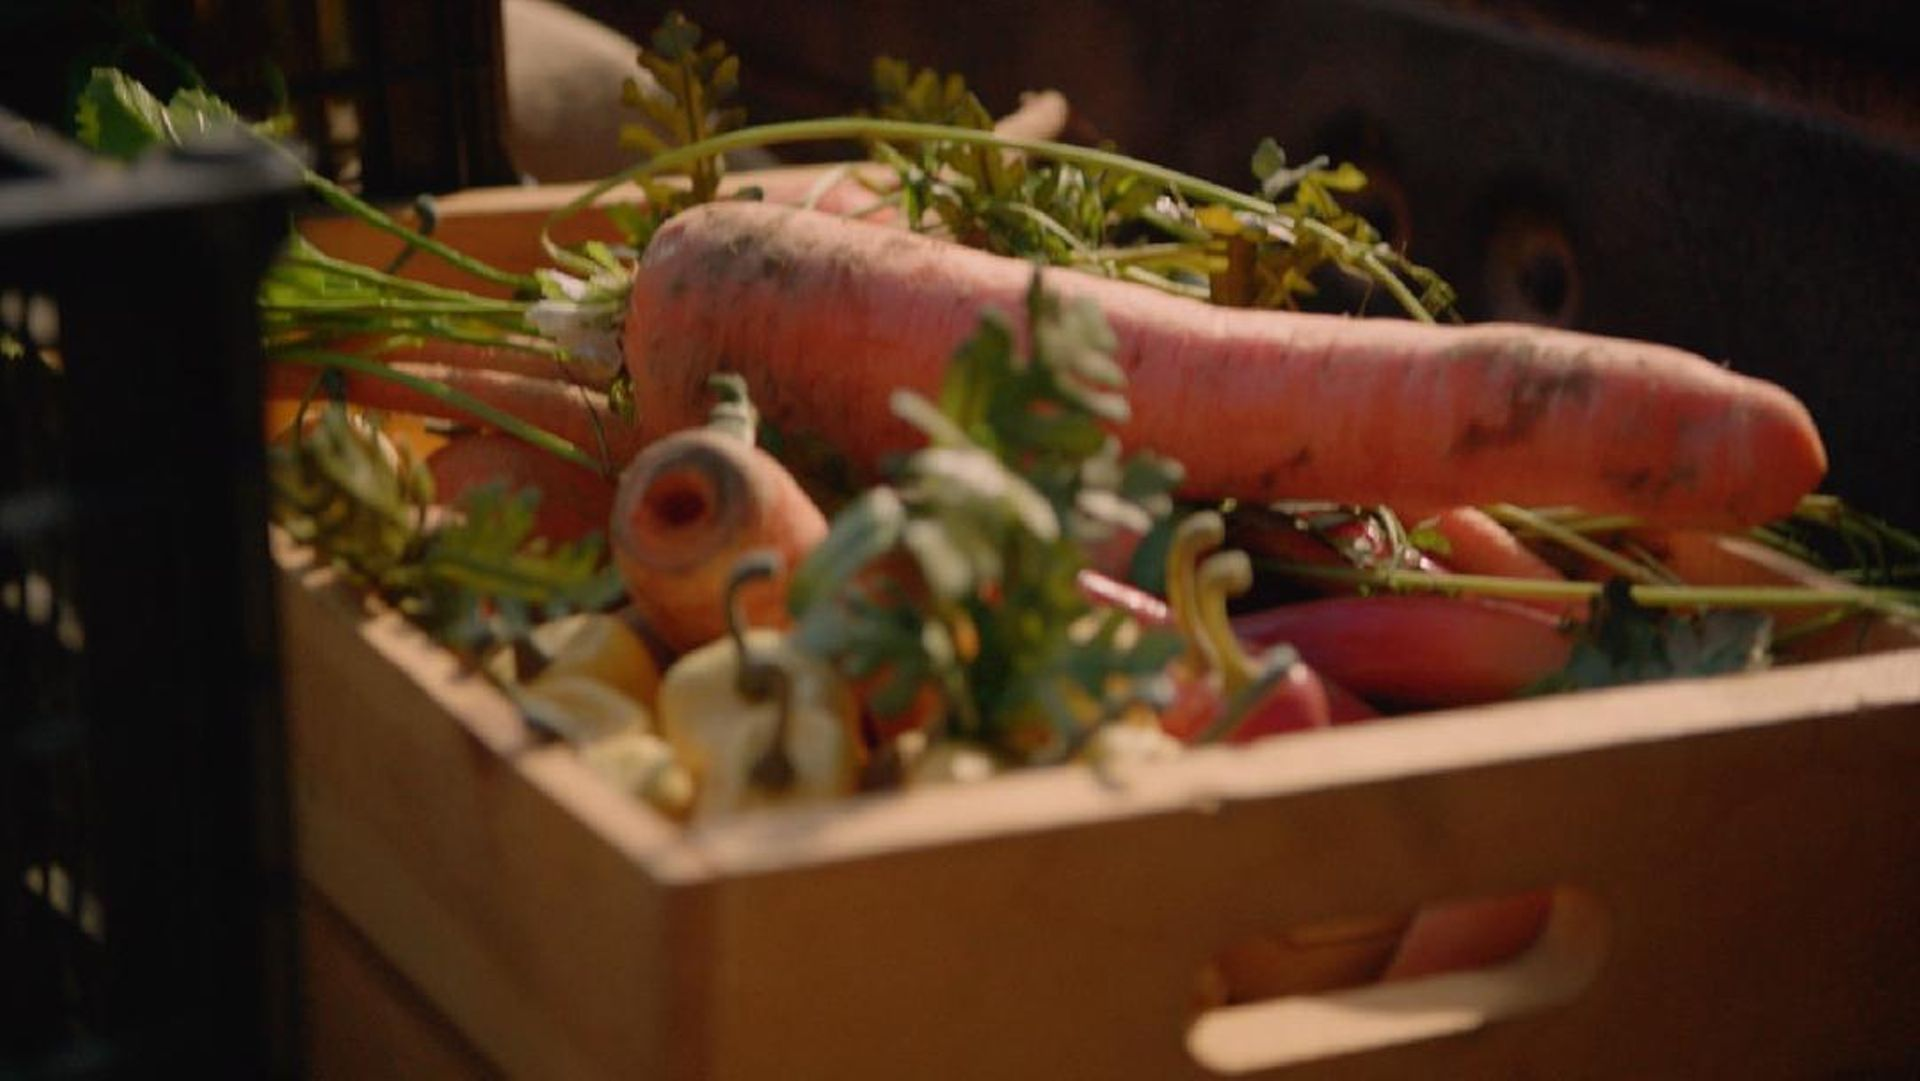 Food: The Source of Life    A carrot takes a dark and surprising journey as it makes its way from a country farm to an upscale restaurant. Food this fresh comes with a cost.